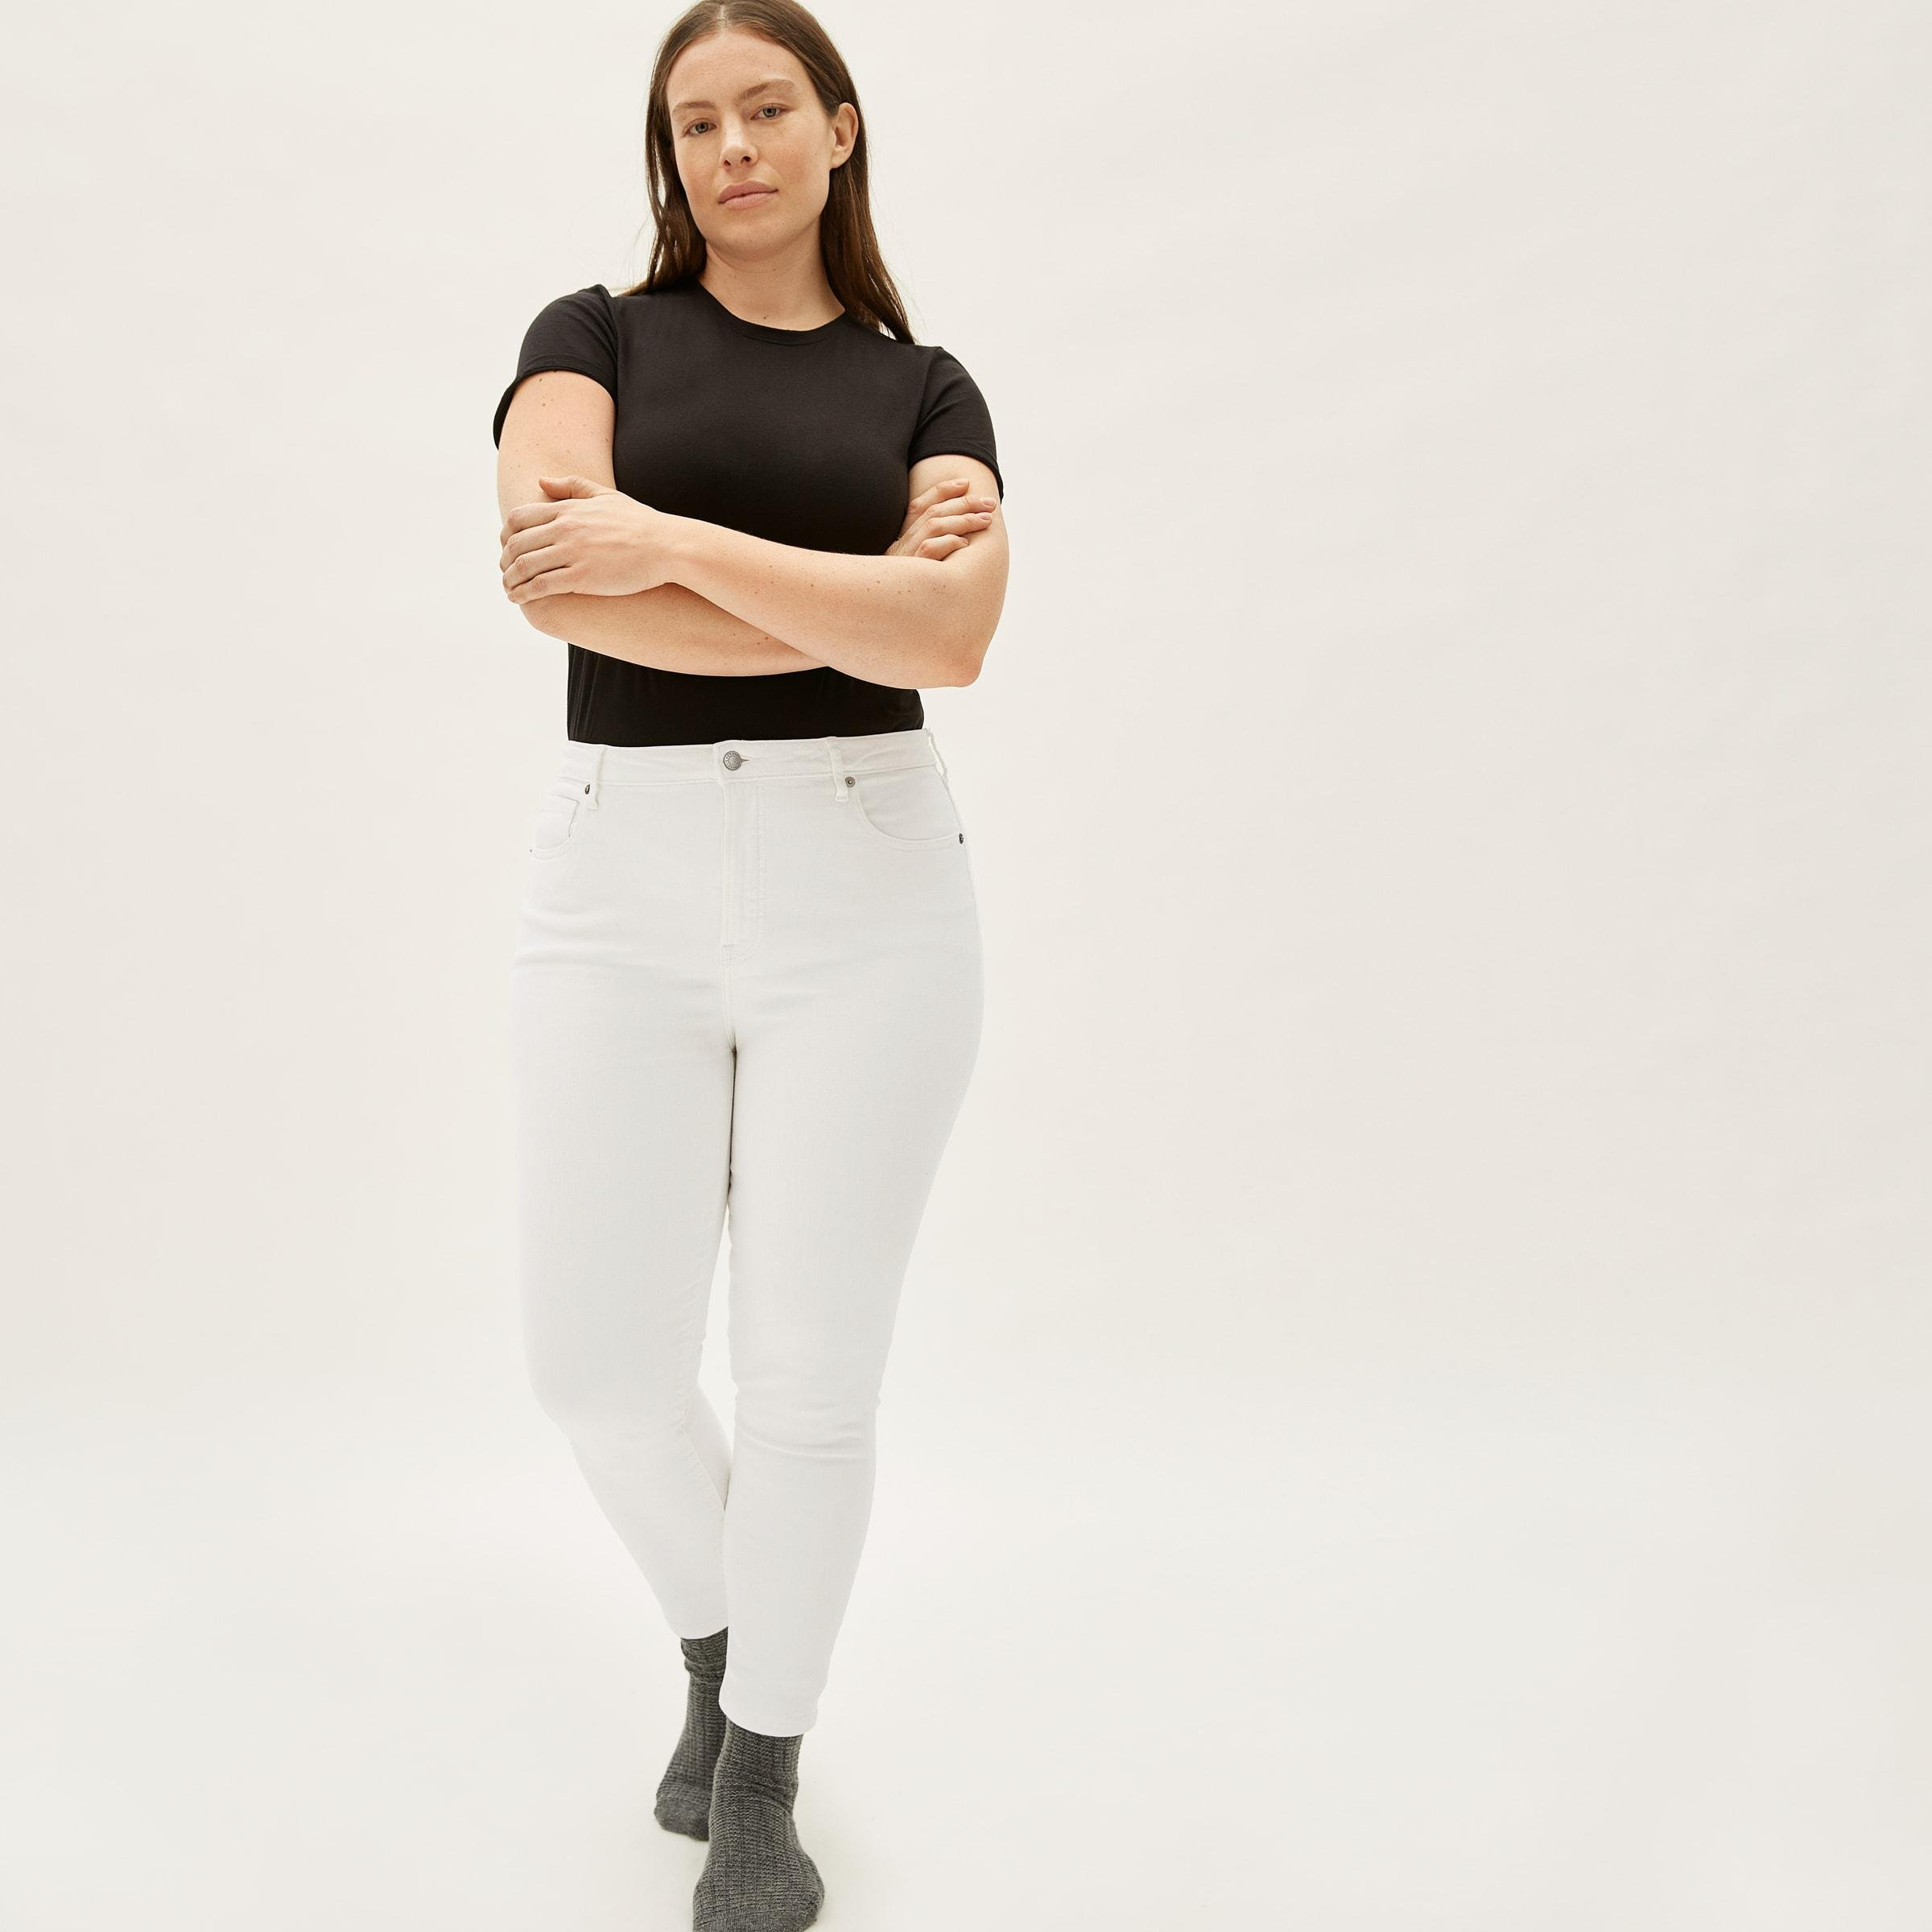 The Curvy Authentic Stretch High-Rise Skinny Jean